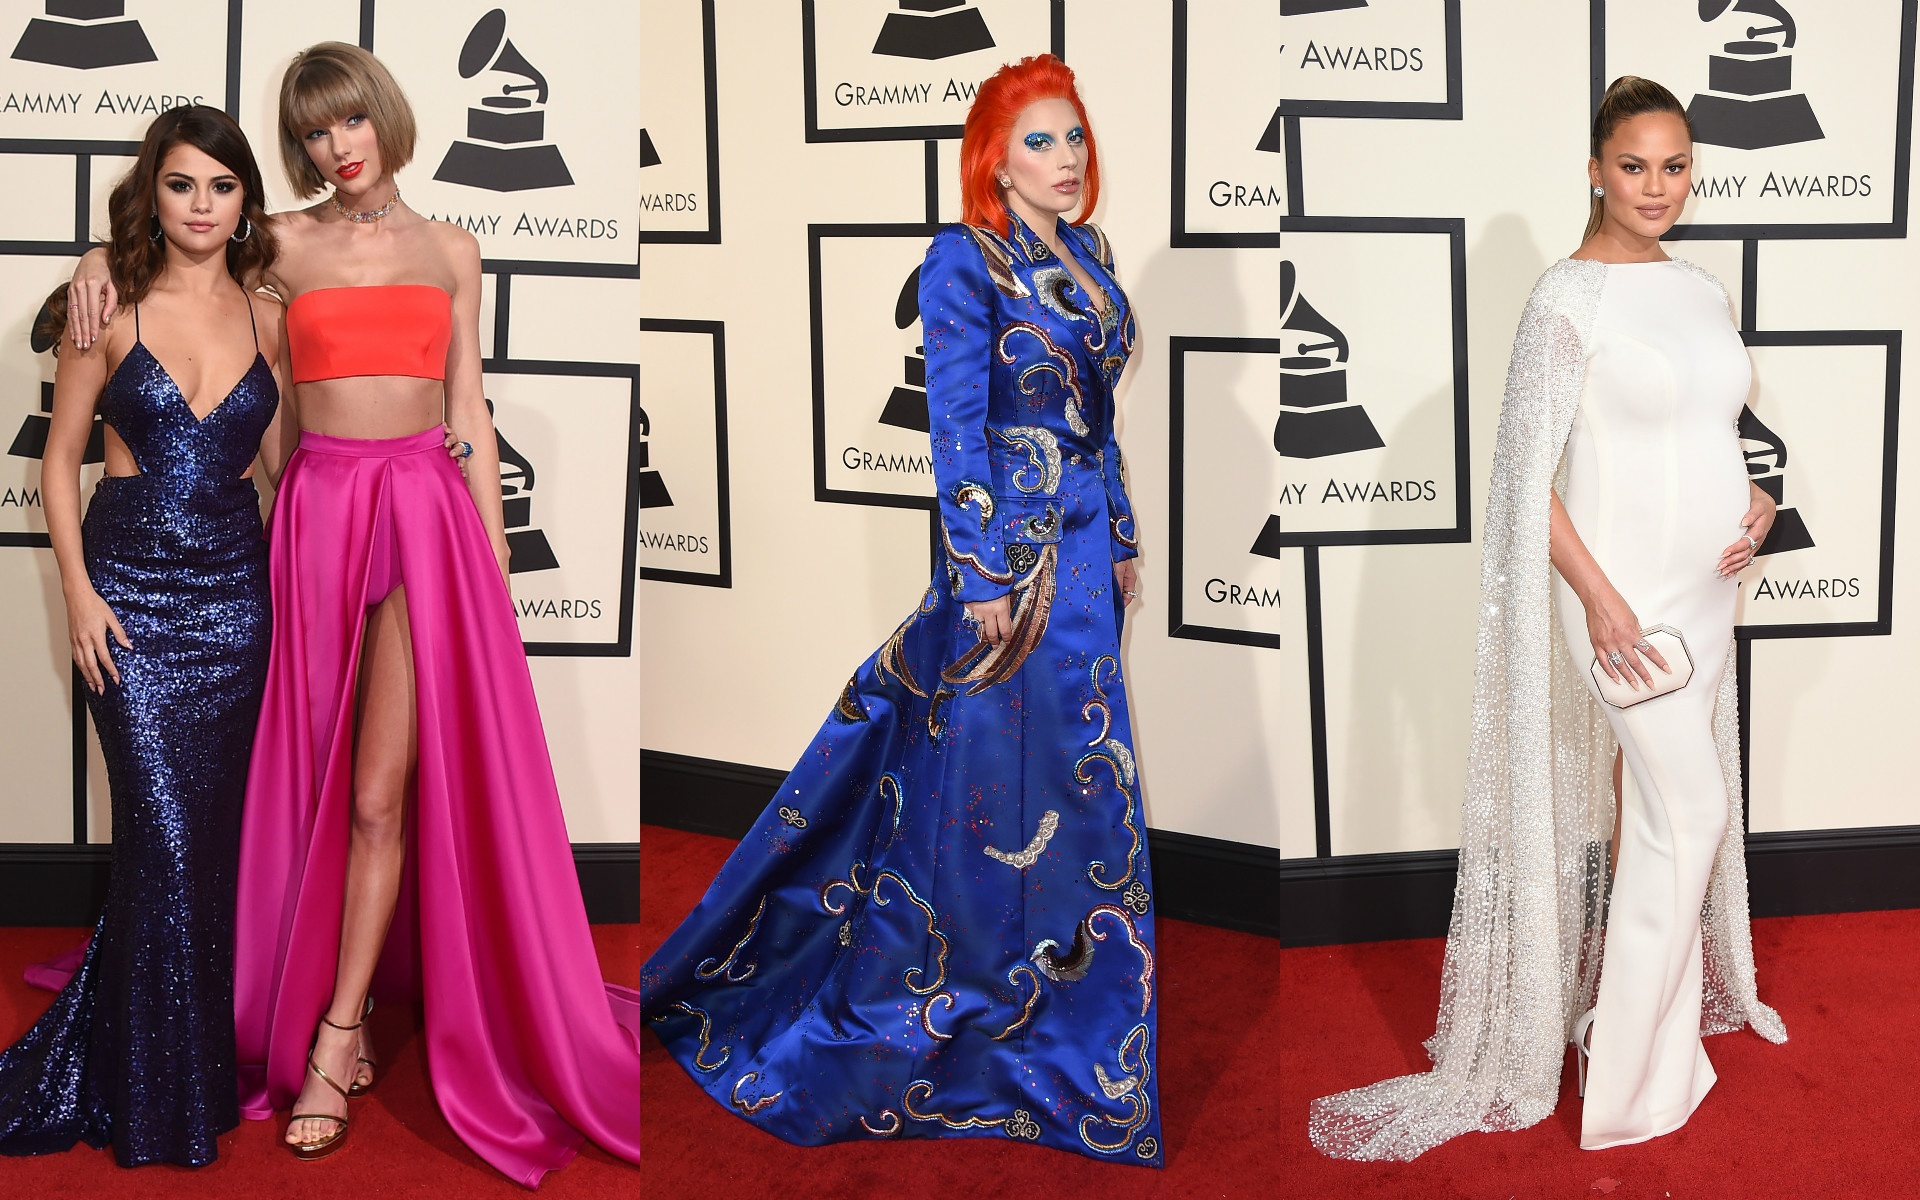 grammys 2016 lady gaga taylor swift all of the red carpet fashion highlights and fails heraldscotland grammys 2016 lady gaga taylor swift